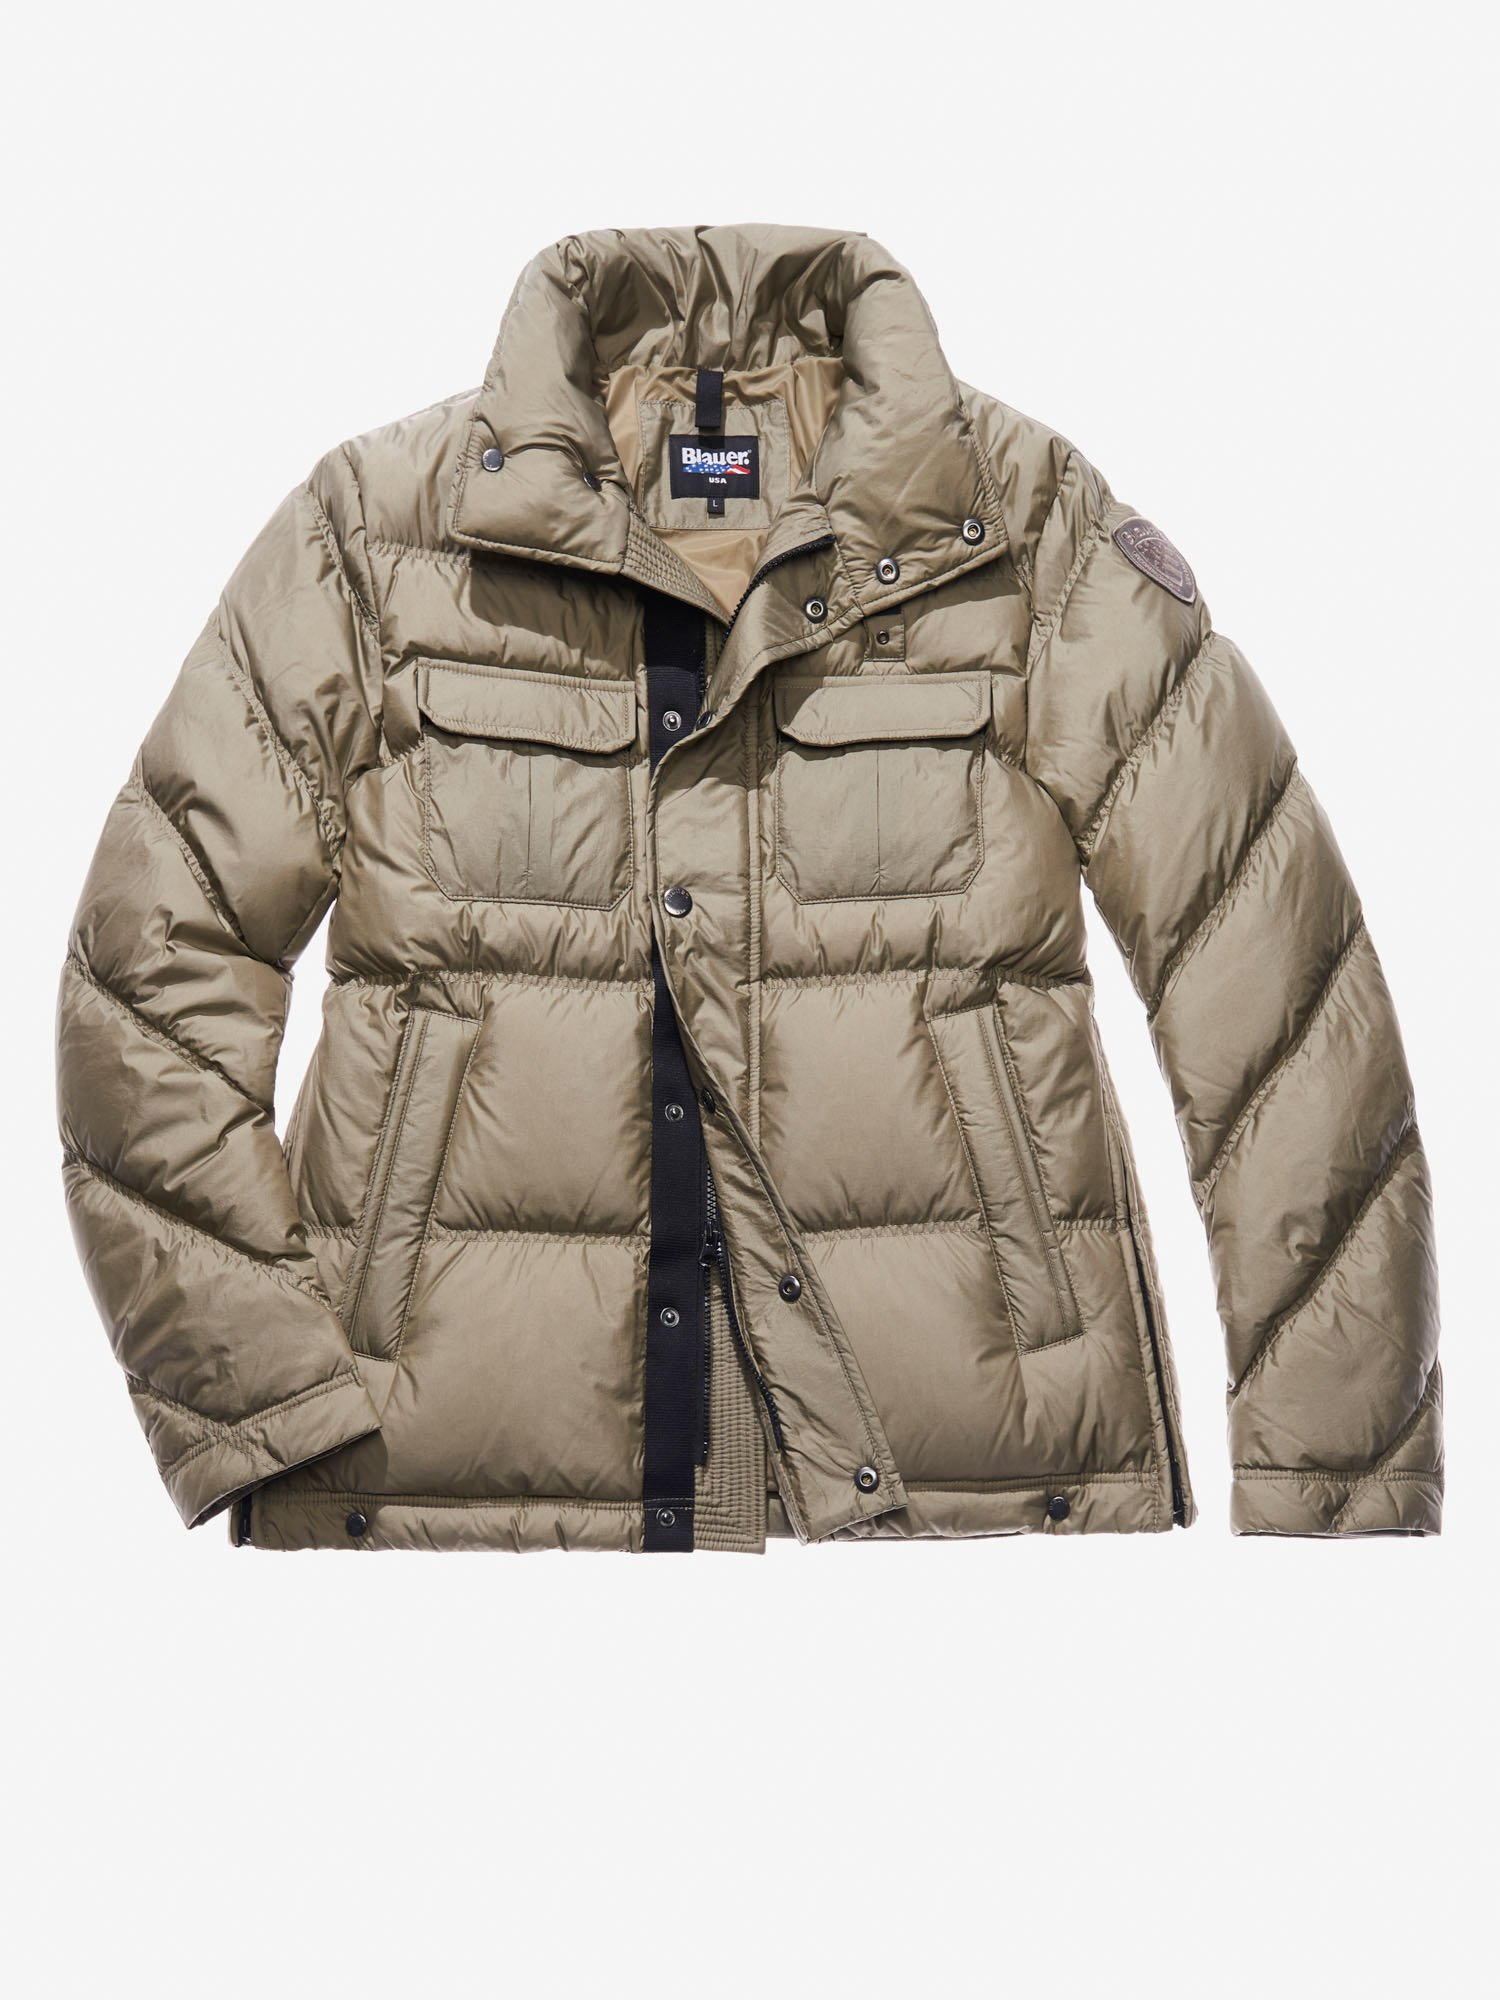 GIOVANNI FOUR-POCKET POLICE-STYLE DOWN JACKET - Blauer